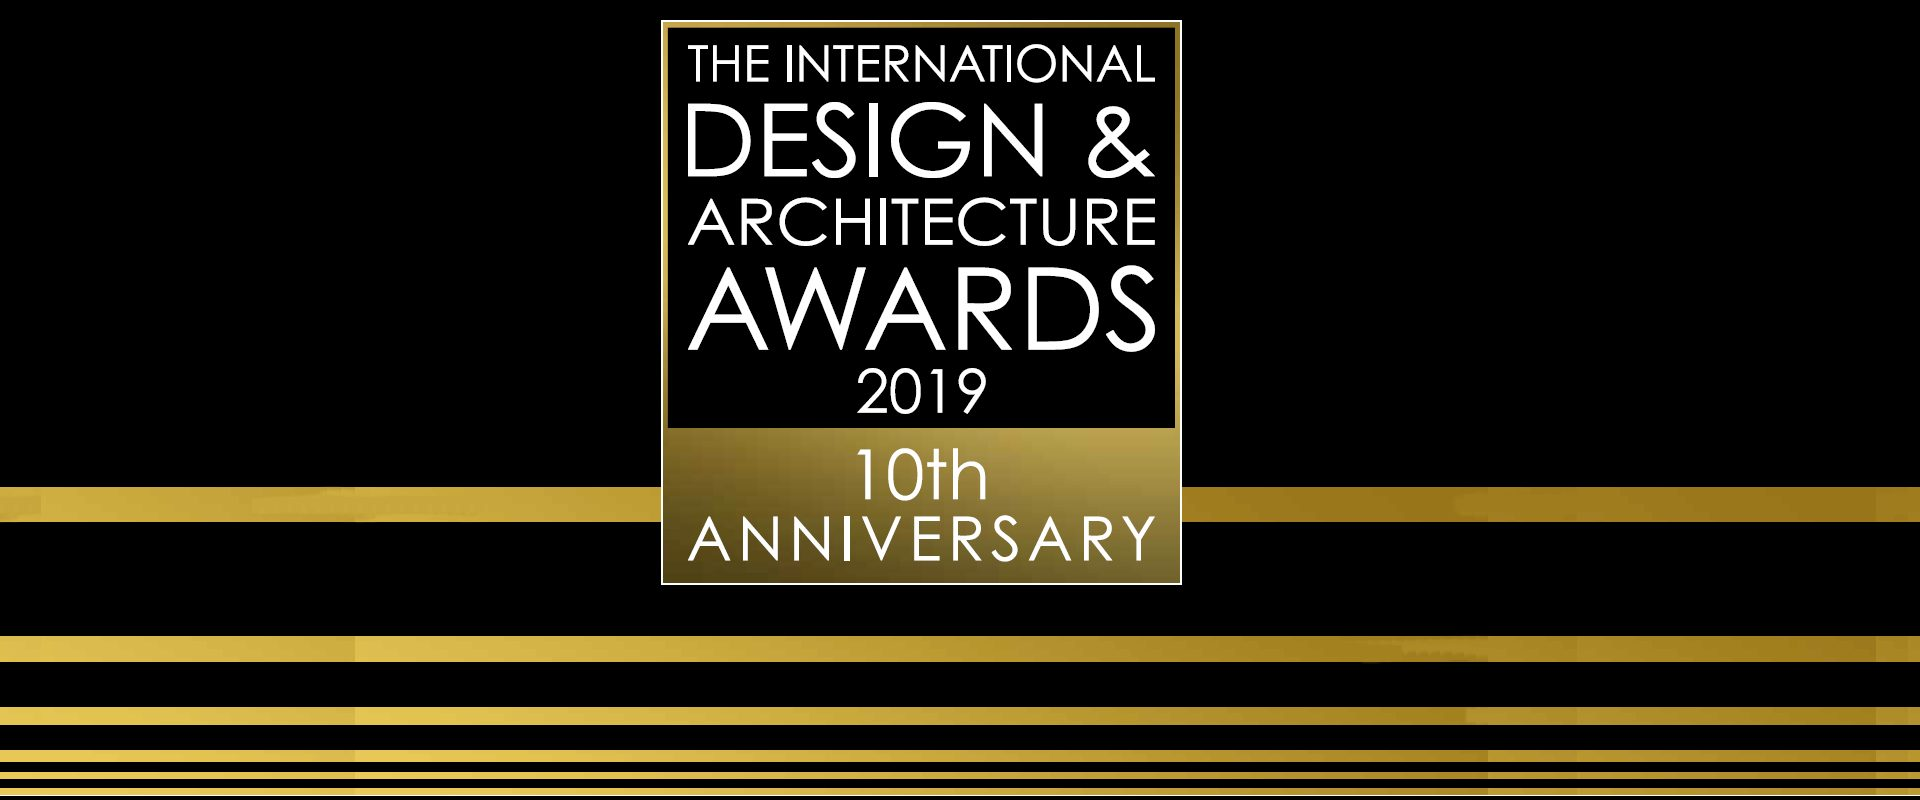 International Design & Architecture Awards 2019